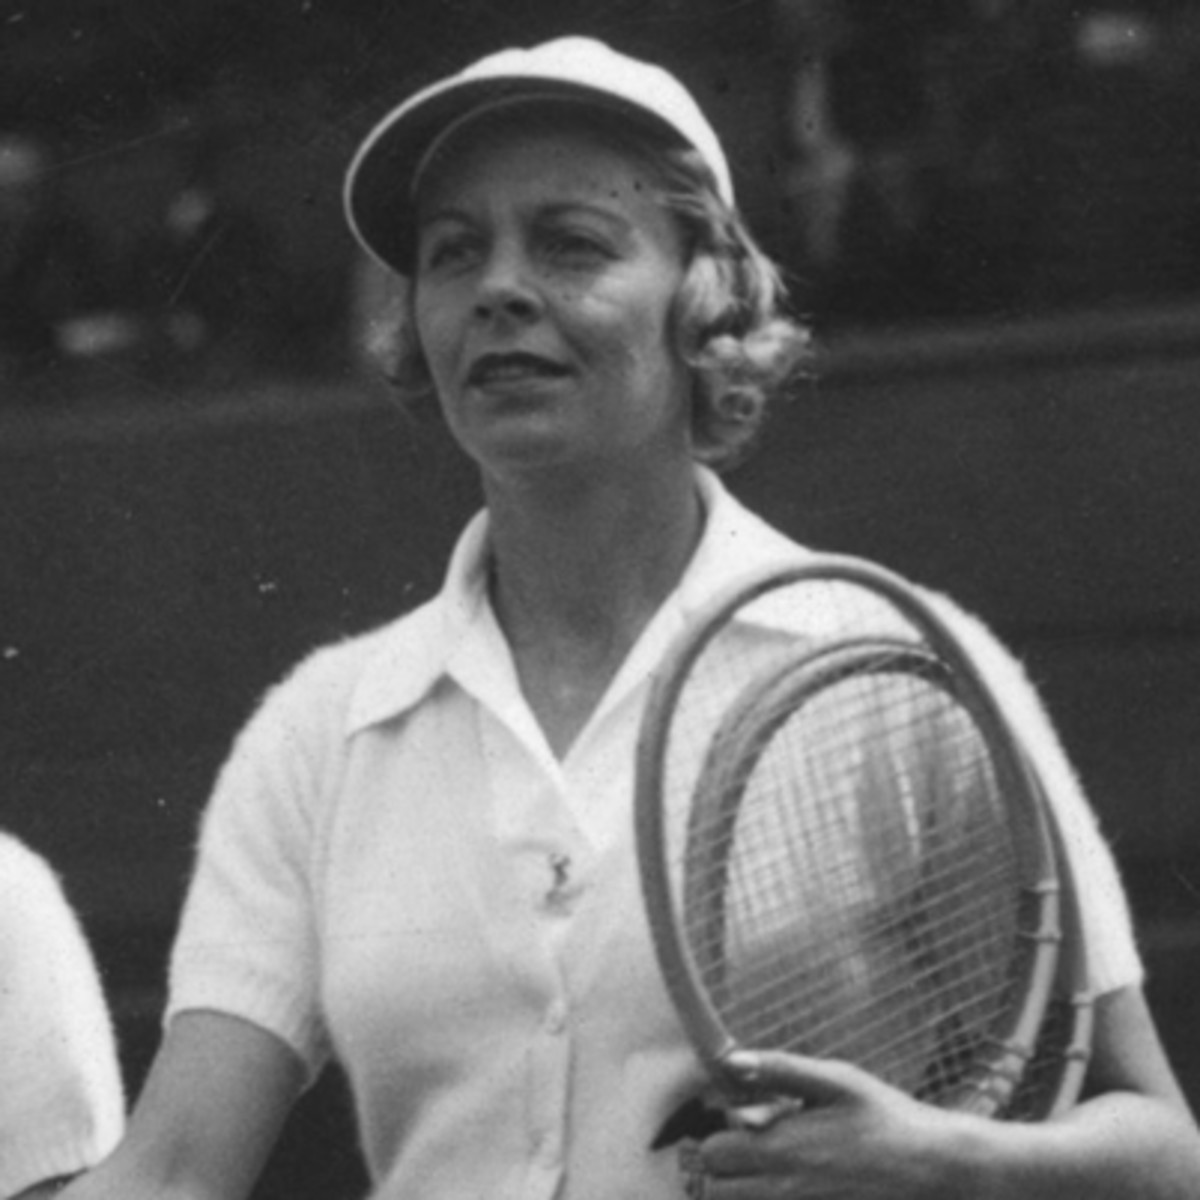 Alice Marble Tennis Player Athlete Spy Biography